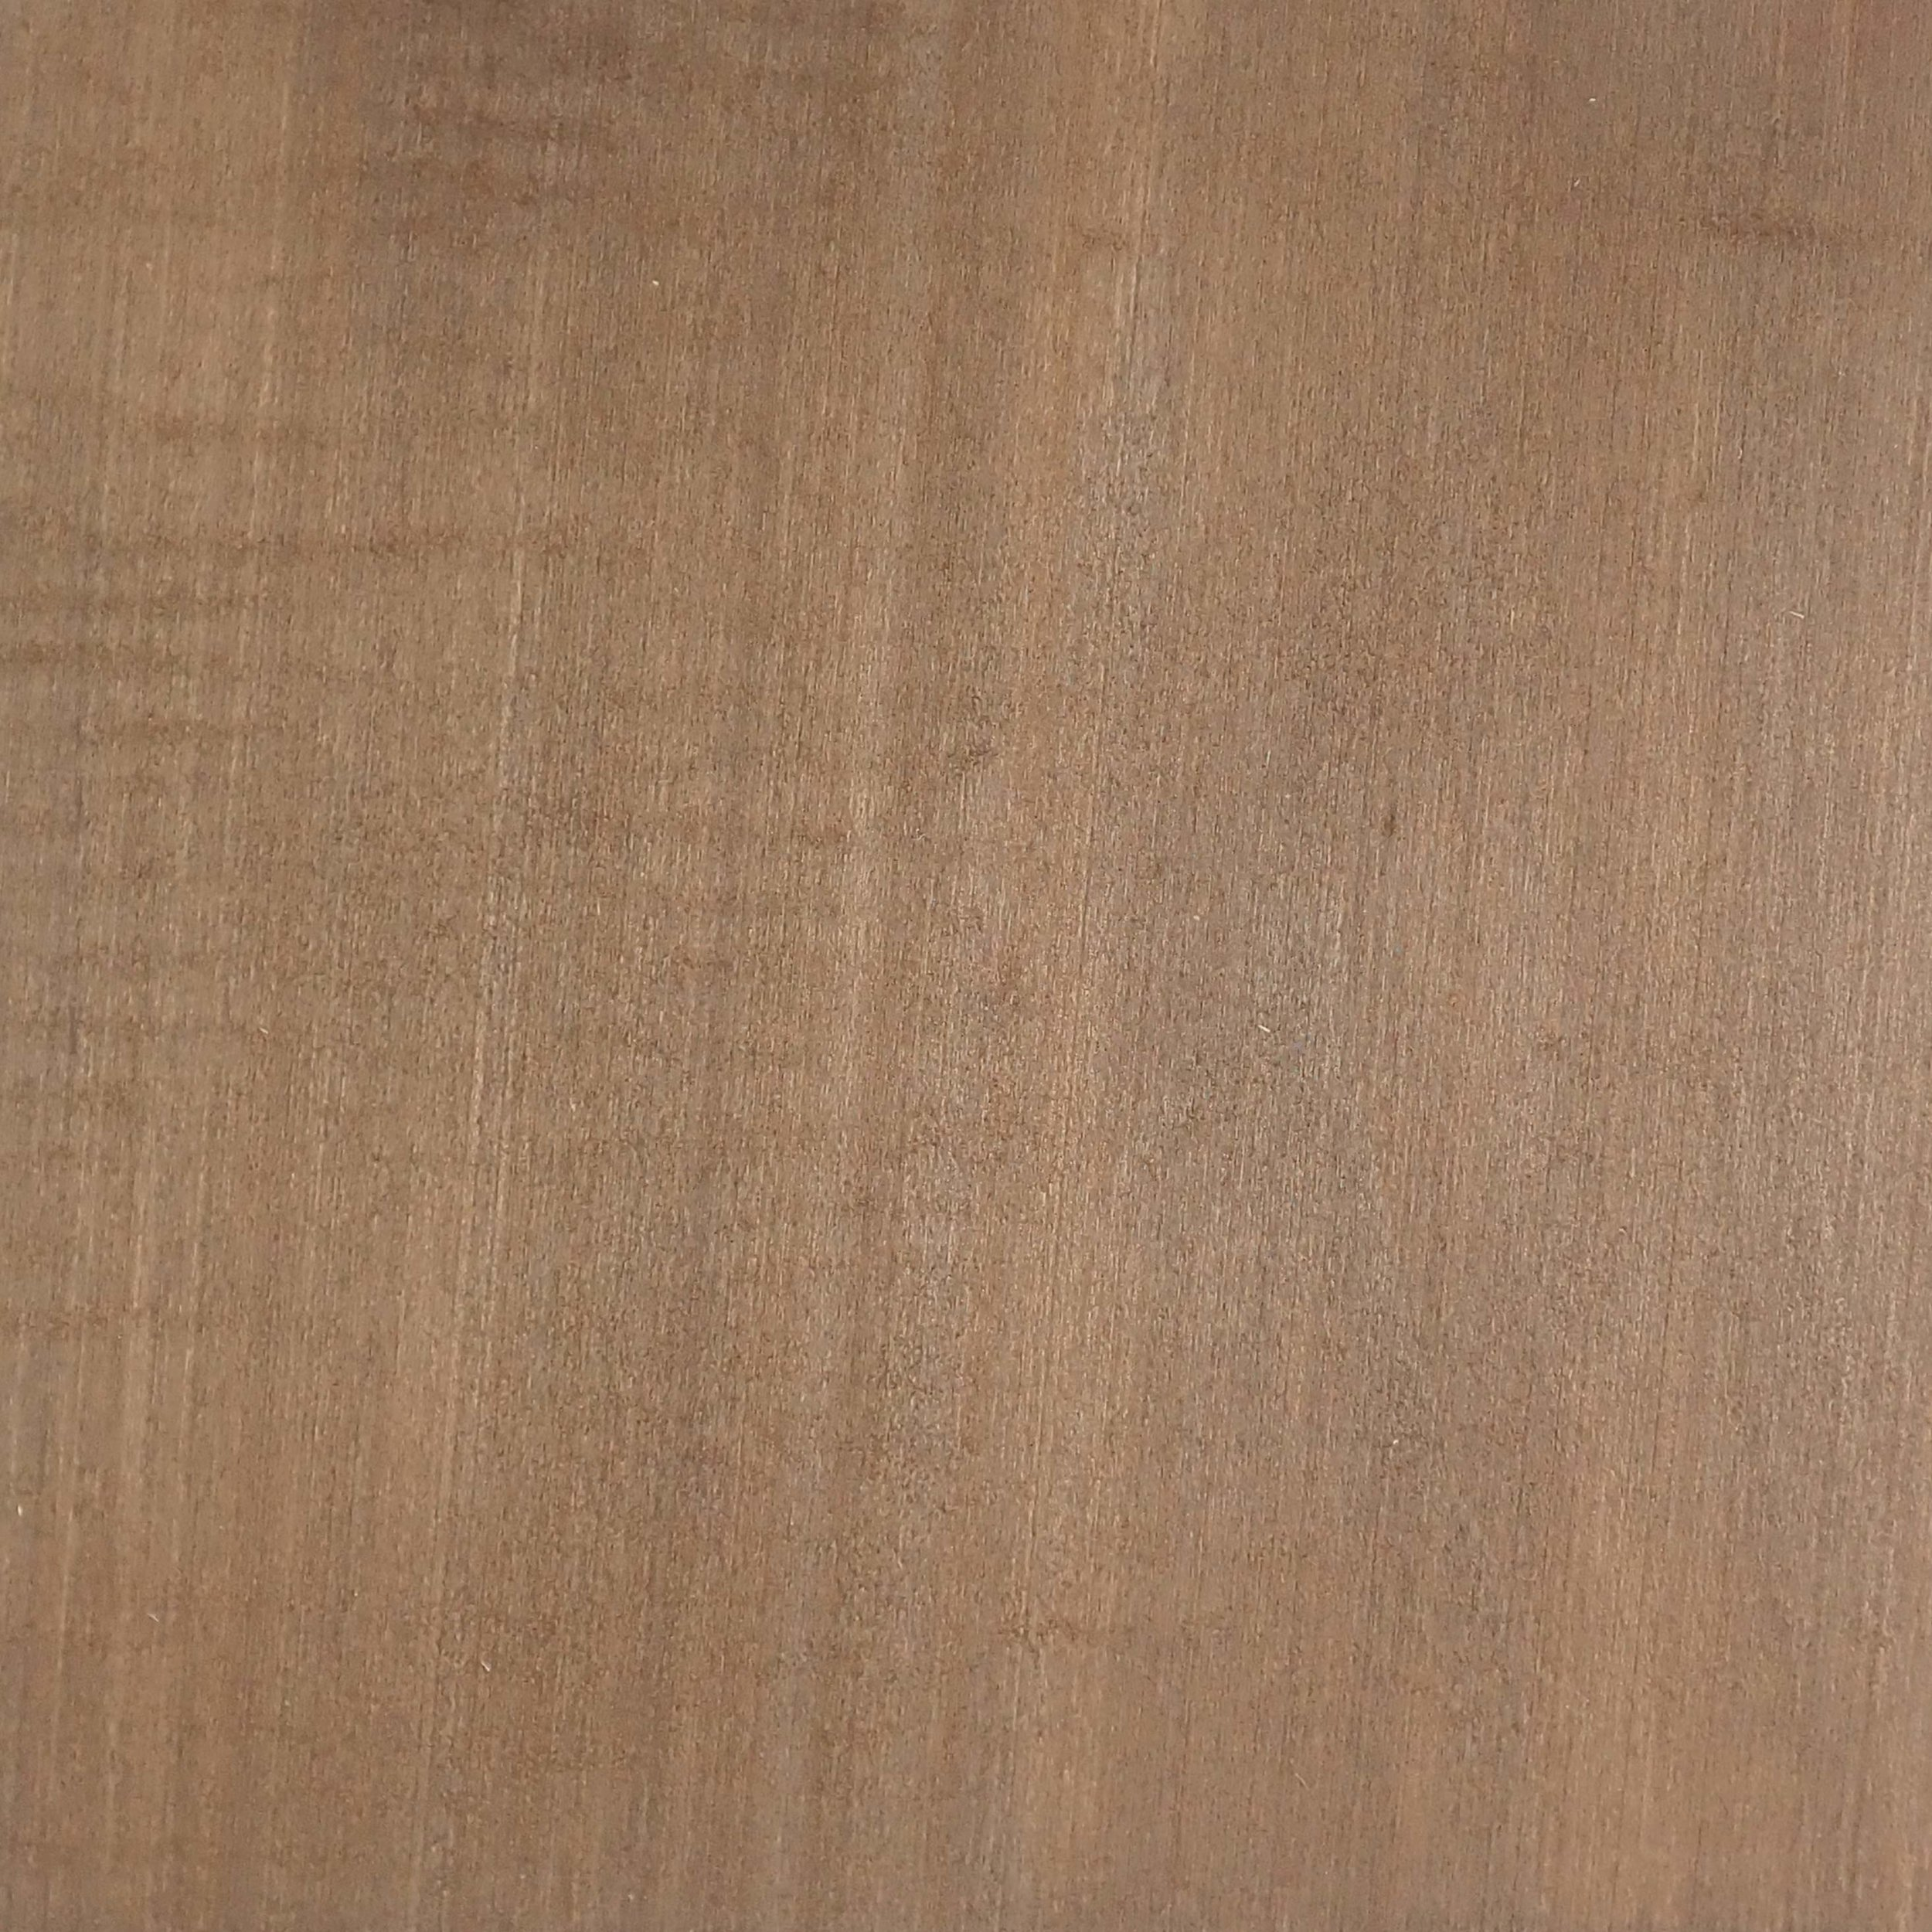 Walnut, Medium